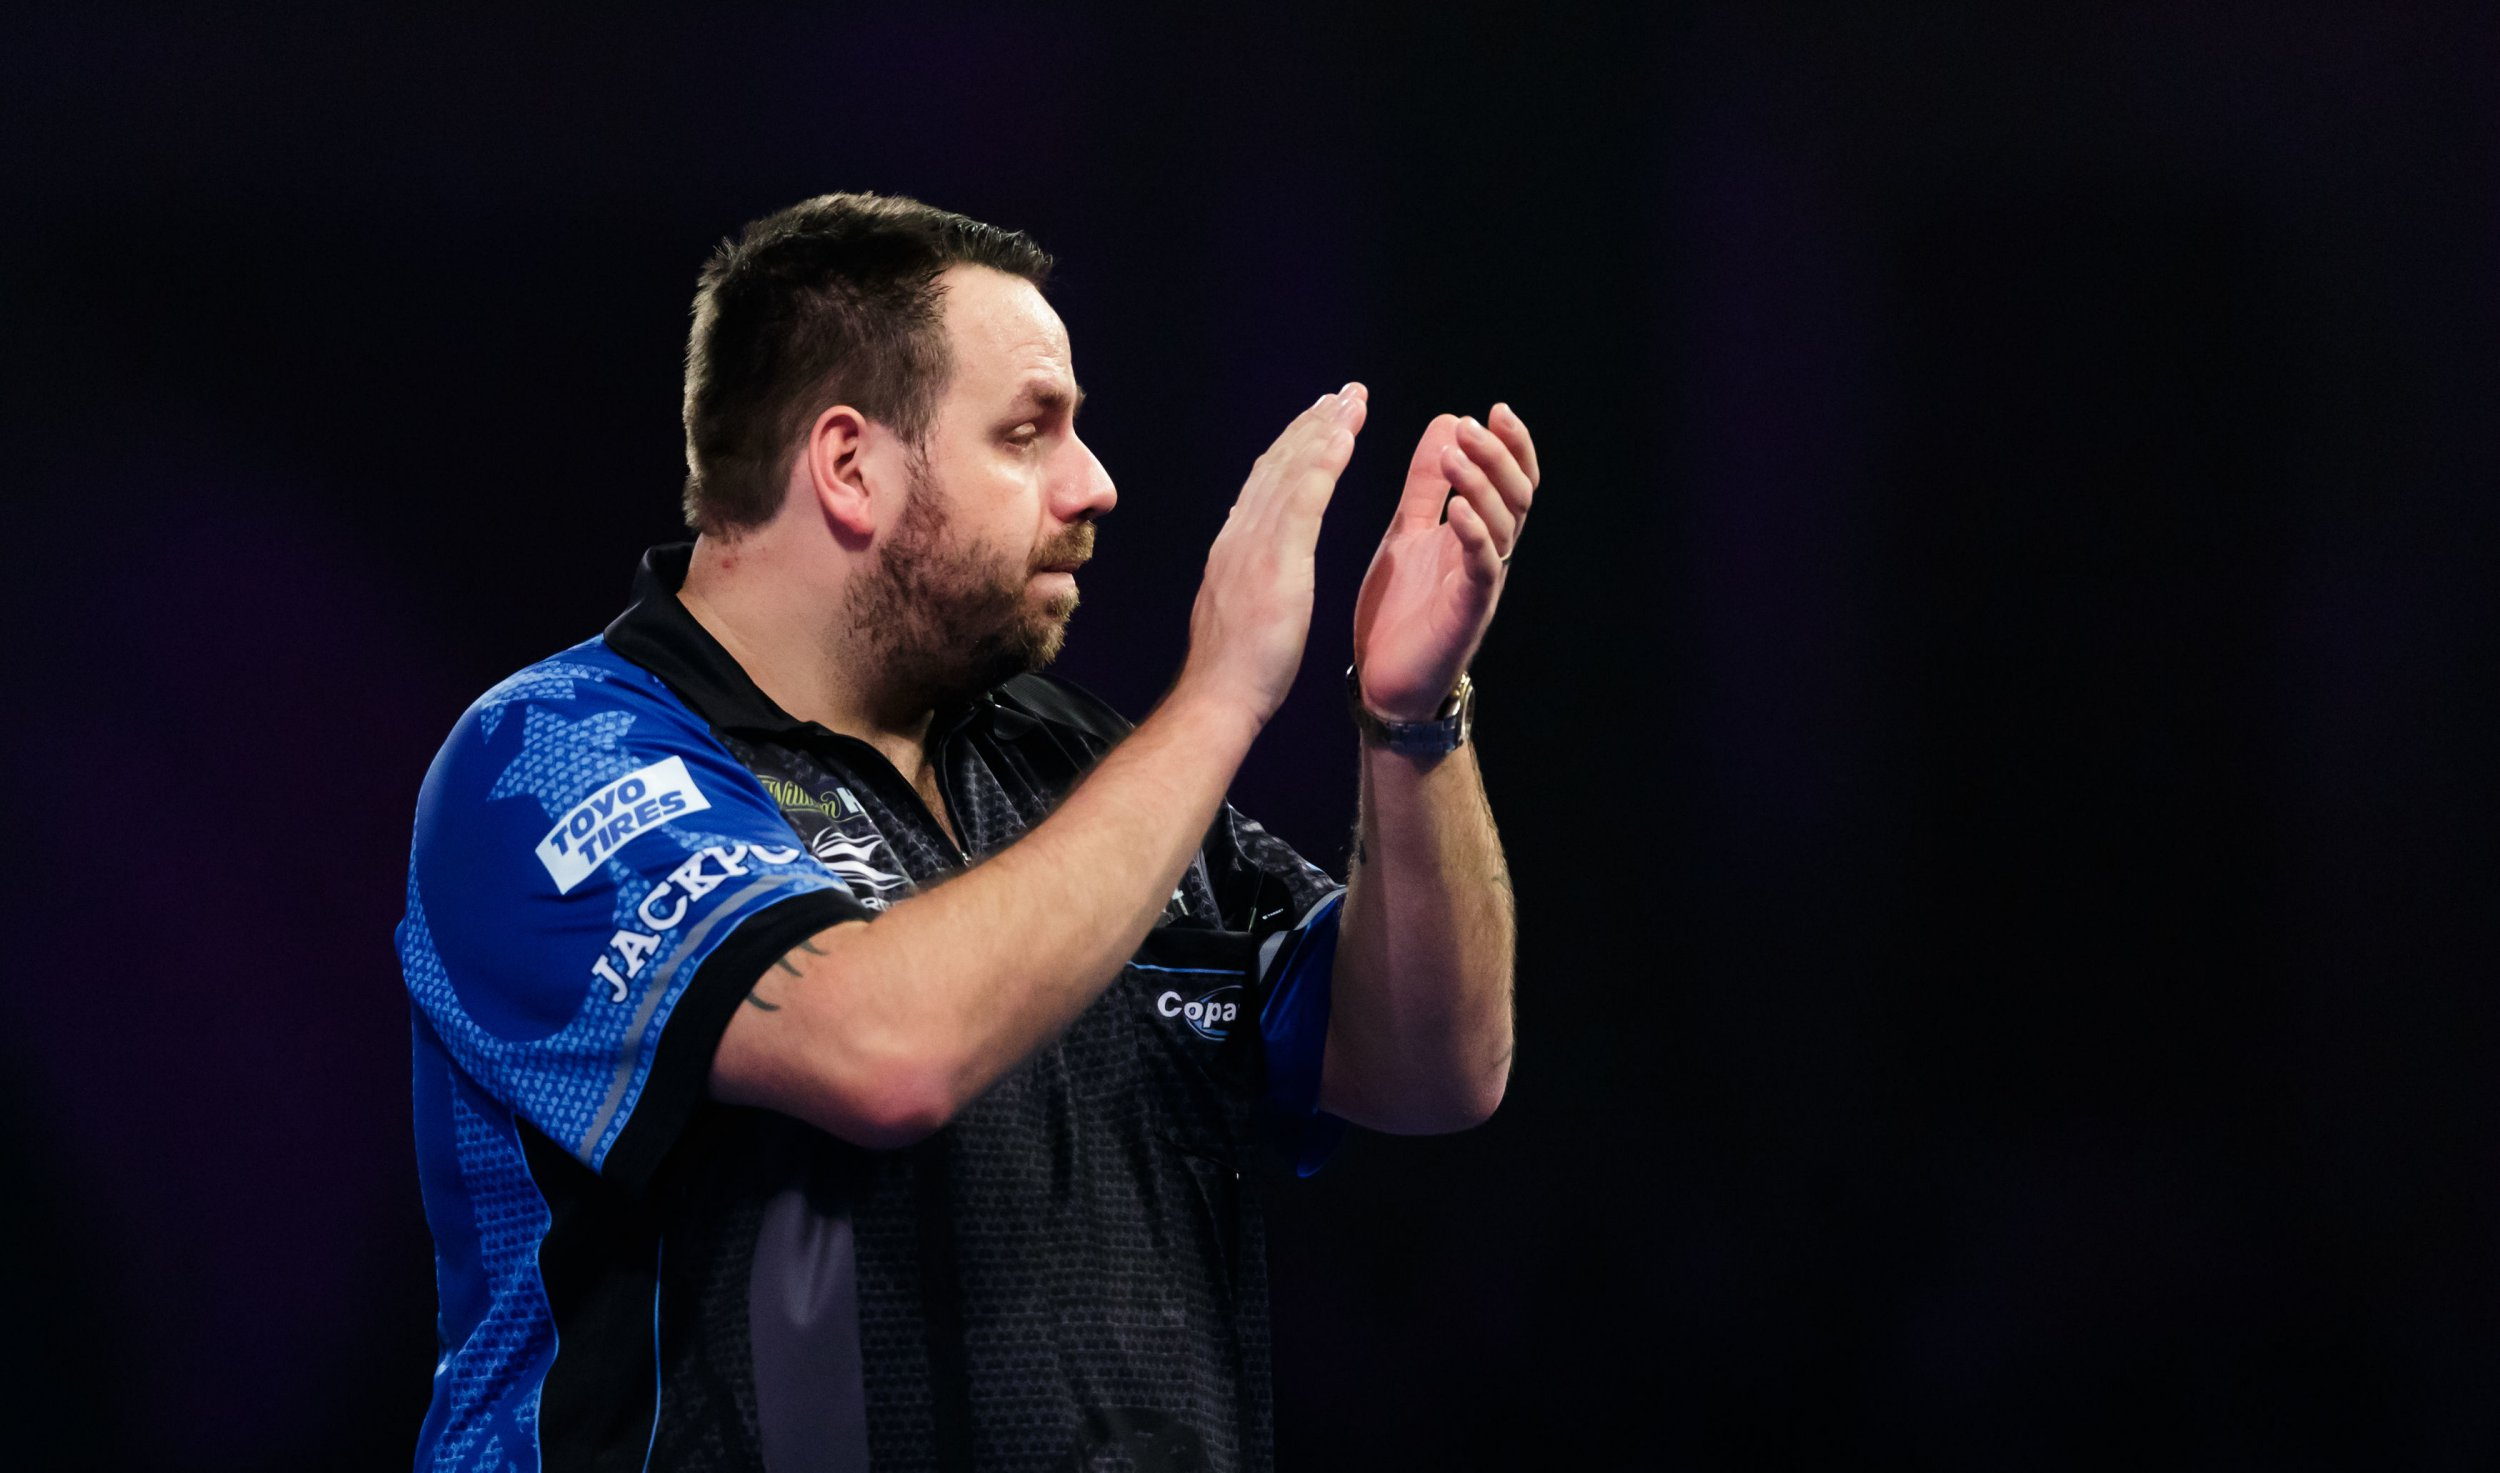 Adrian Lewis is not on board with the Premier League 'contenders' idea but can't wait for UK Open return